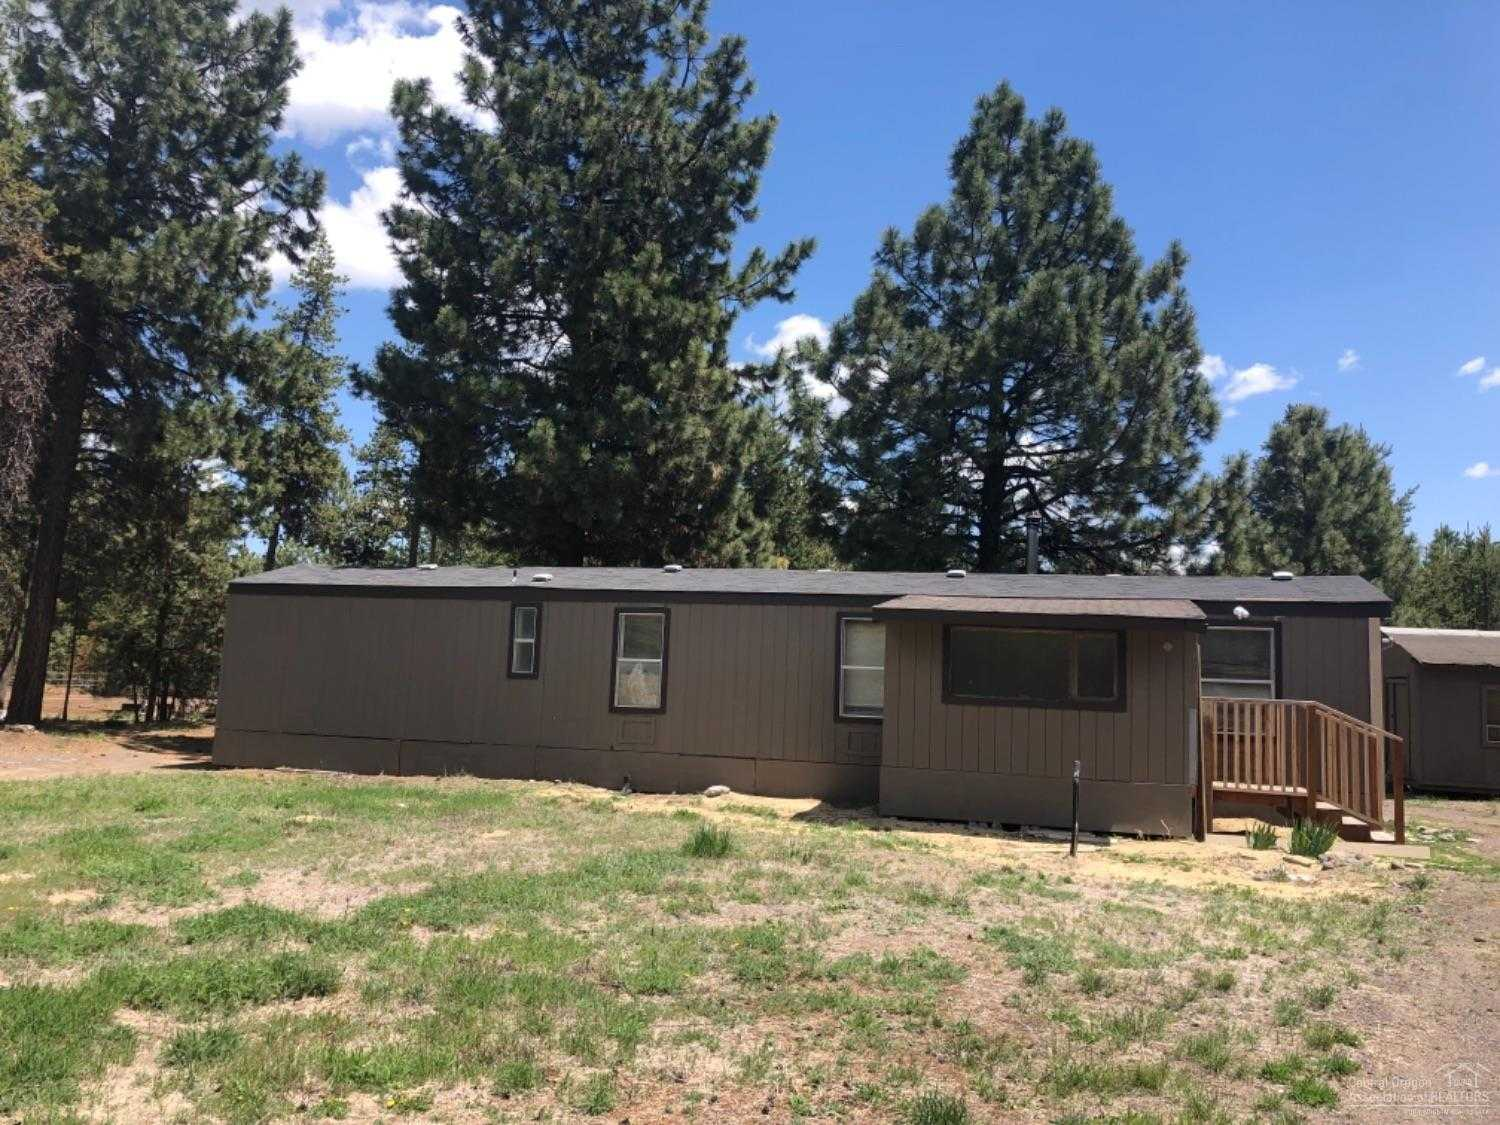 $149,900 - 2Br/1Ba -  for Sale in La Pine